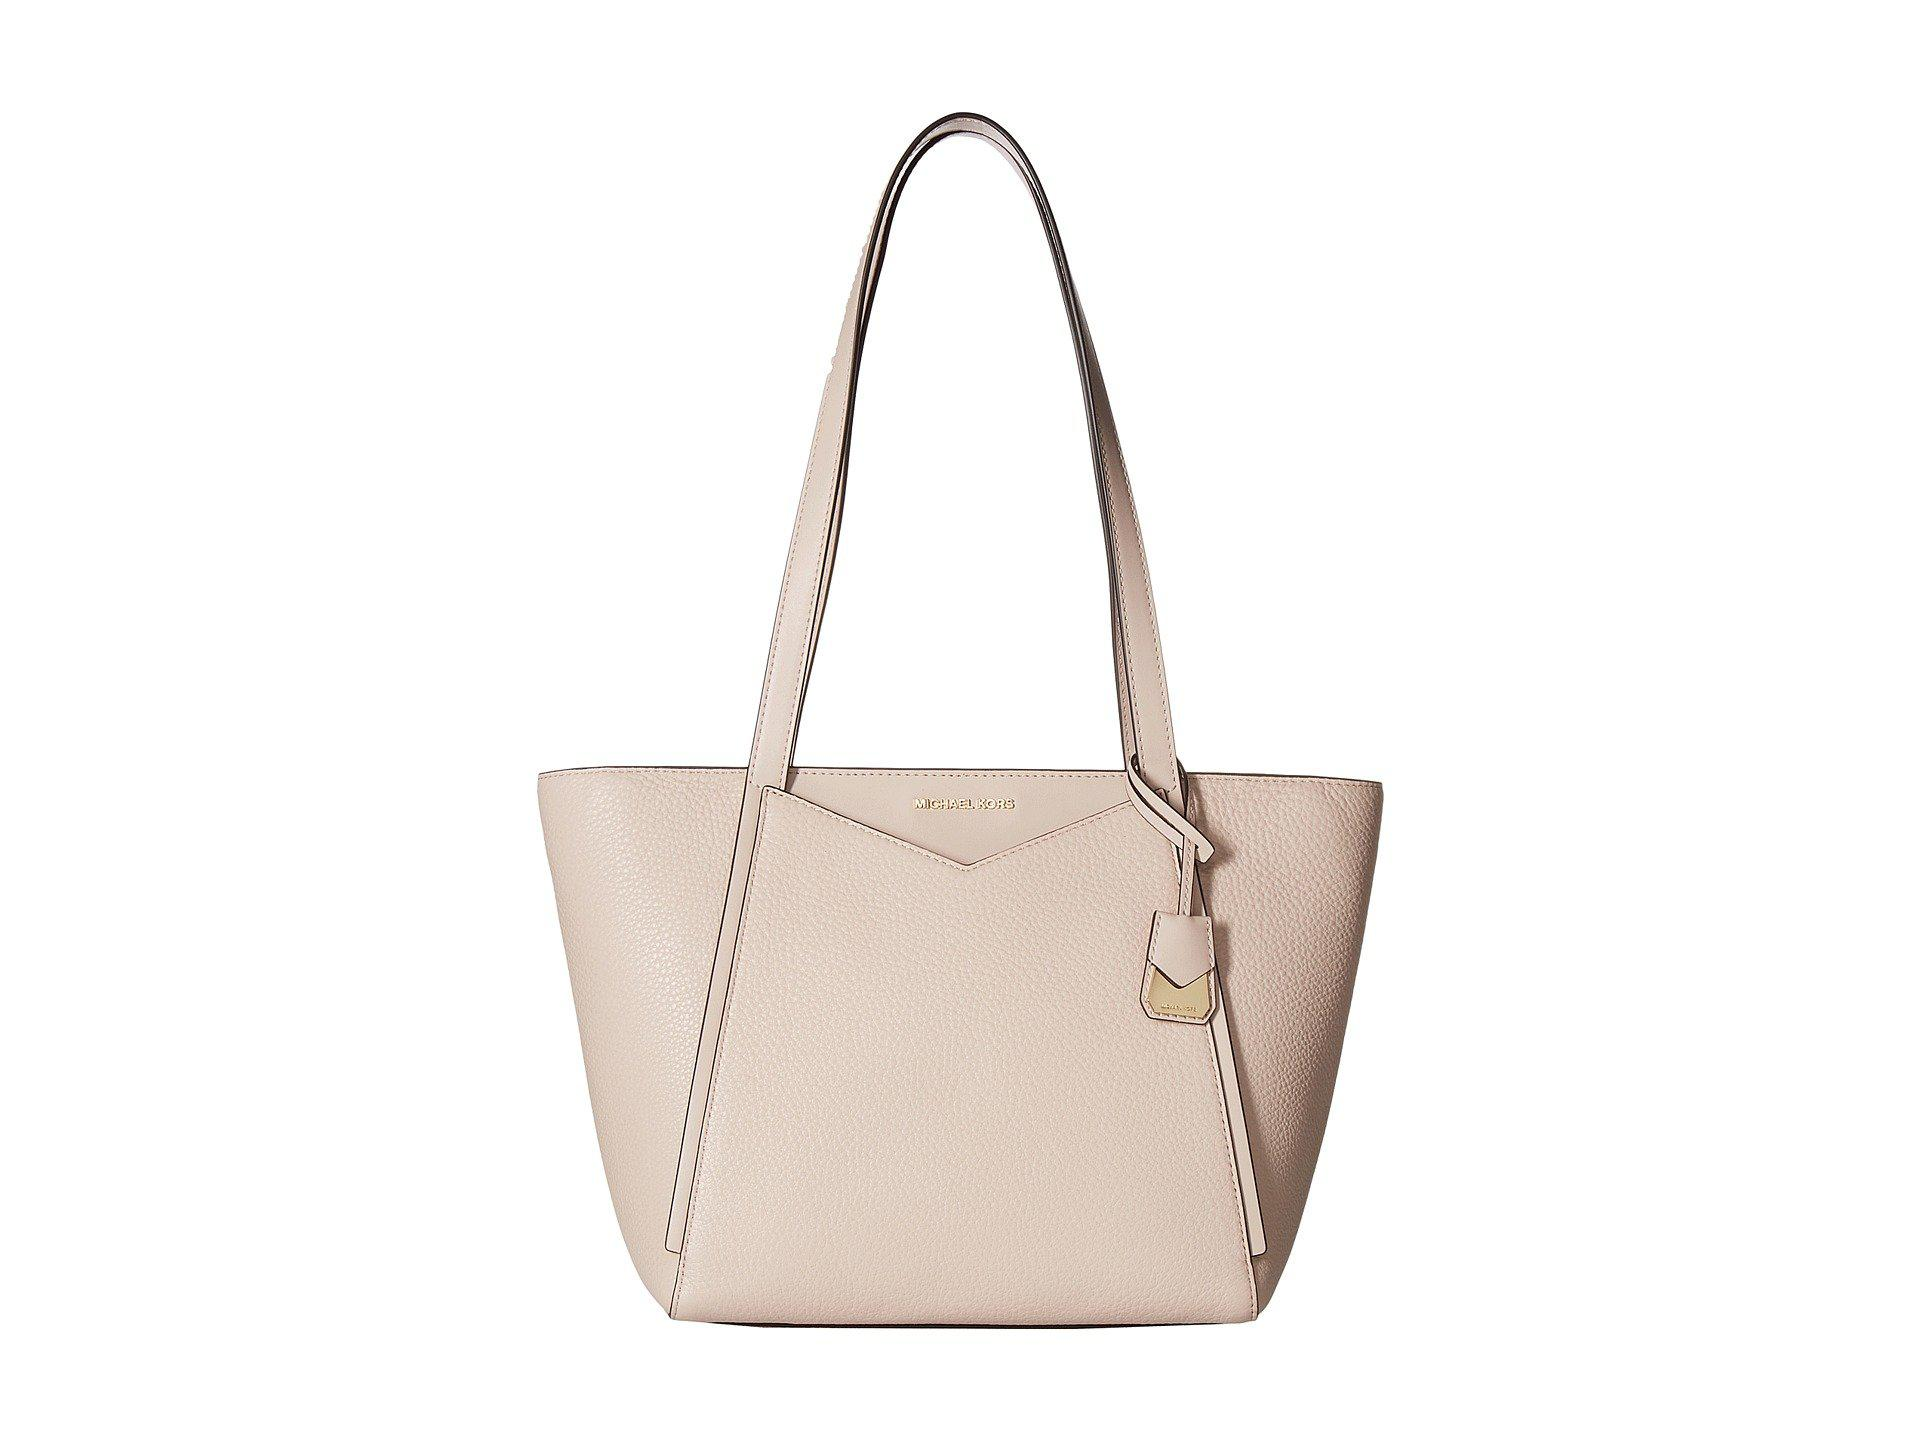 73ad79c7b2c68 Lyst - MICHAEL Michael Kors Whitney Small Top Zip Tote in Pink ...